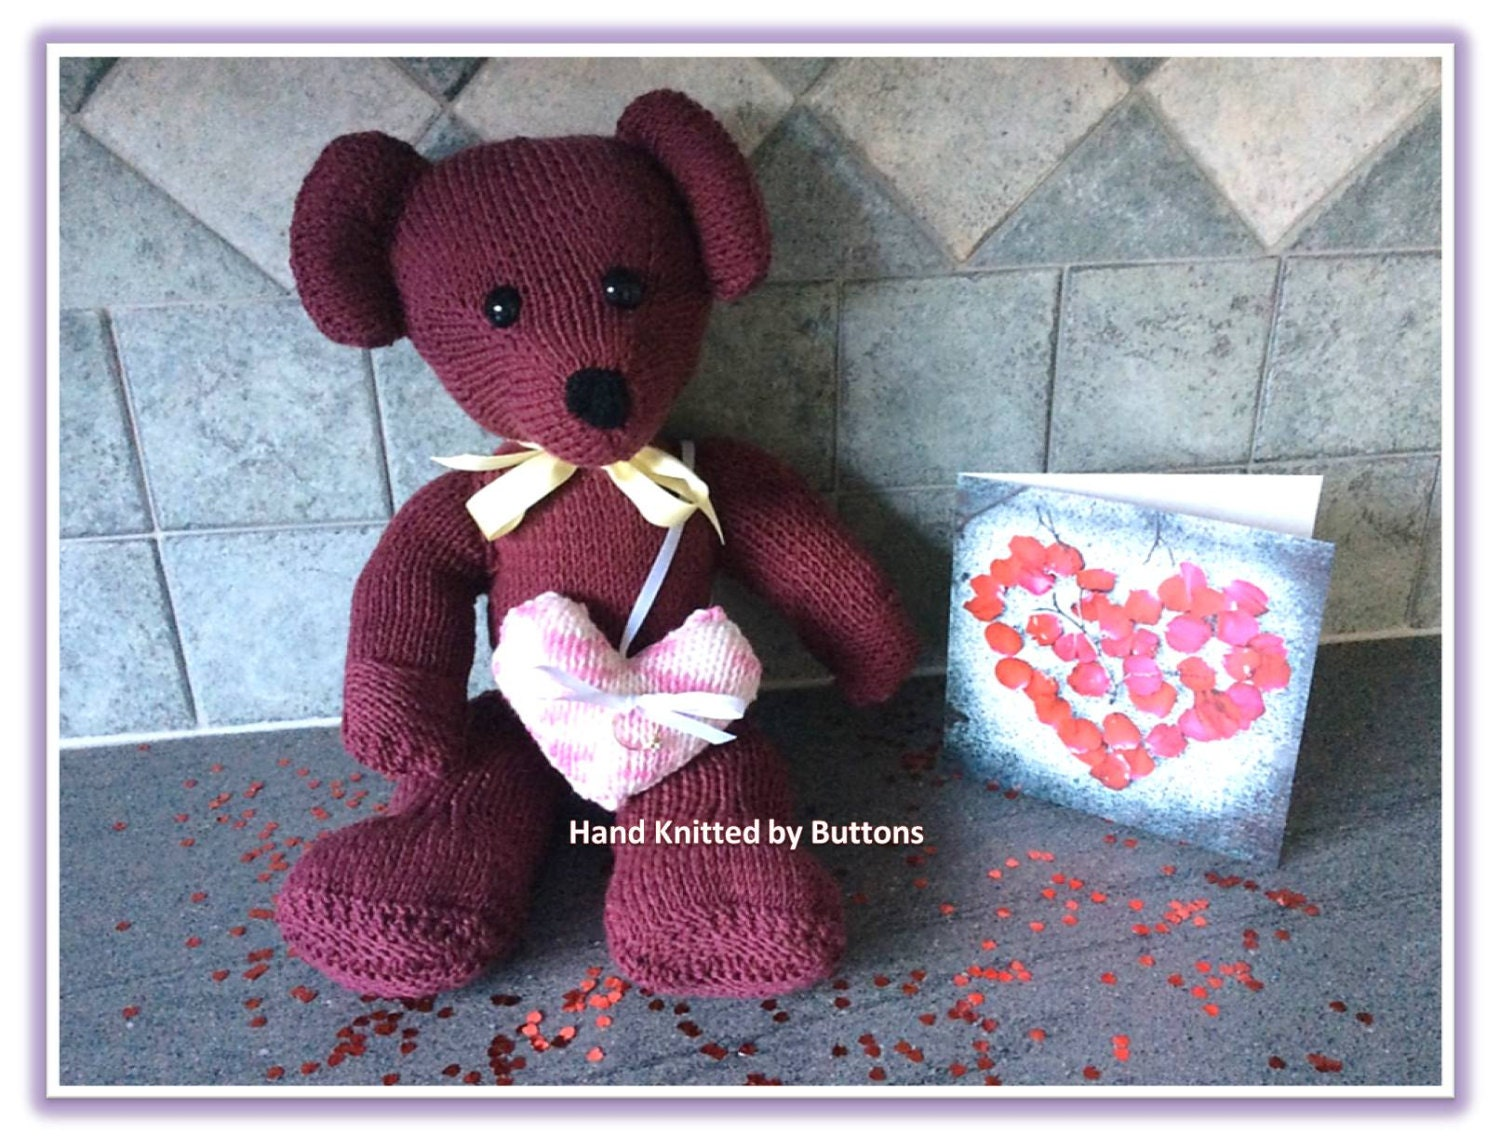 Knitted bear Plum Teddy Bear CE tested Teddy Valentine bearKnitted teddyTeddy Bear Heart ring cushion Engagement giftSweetheart gift